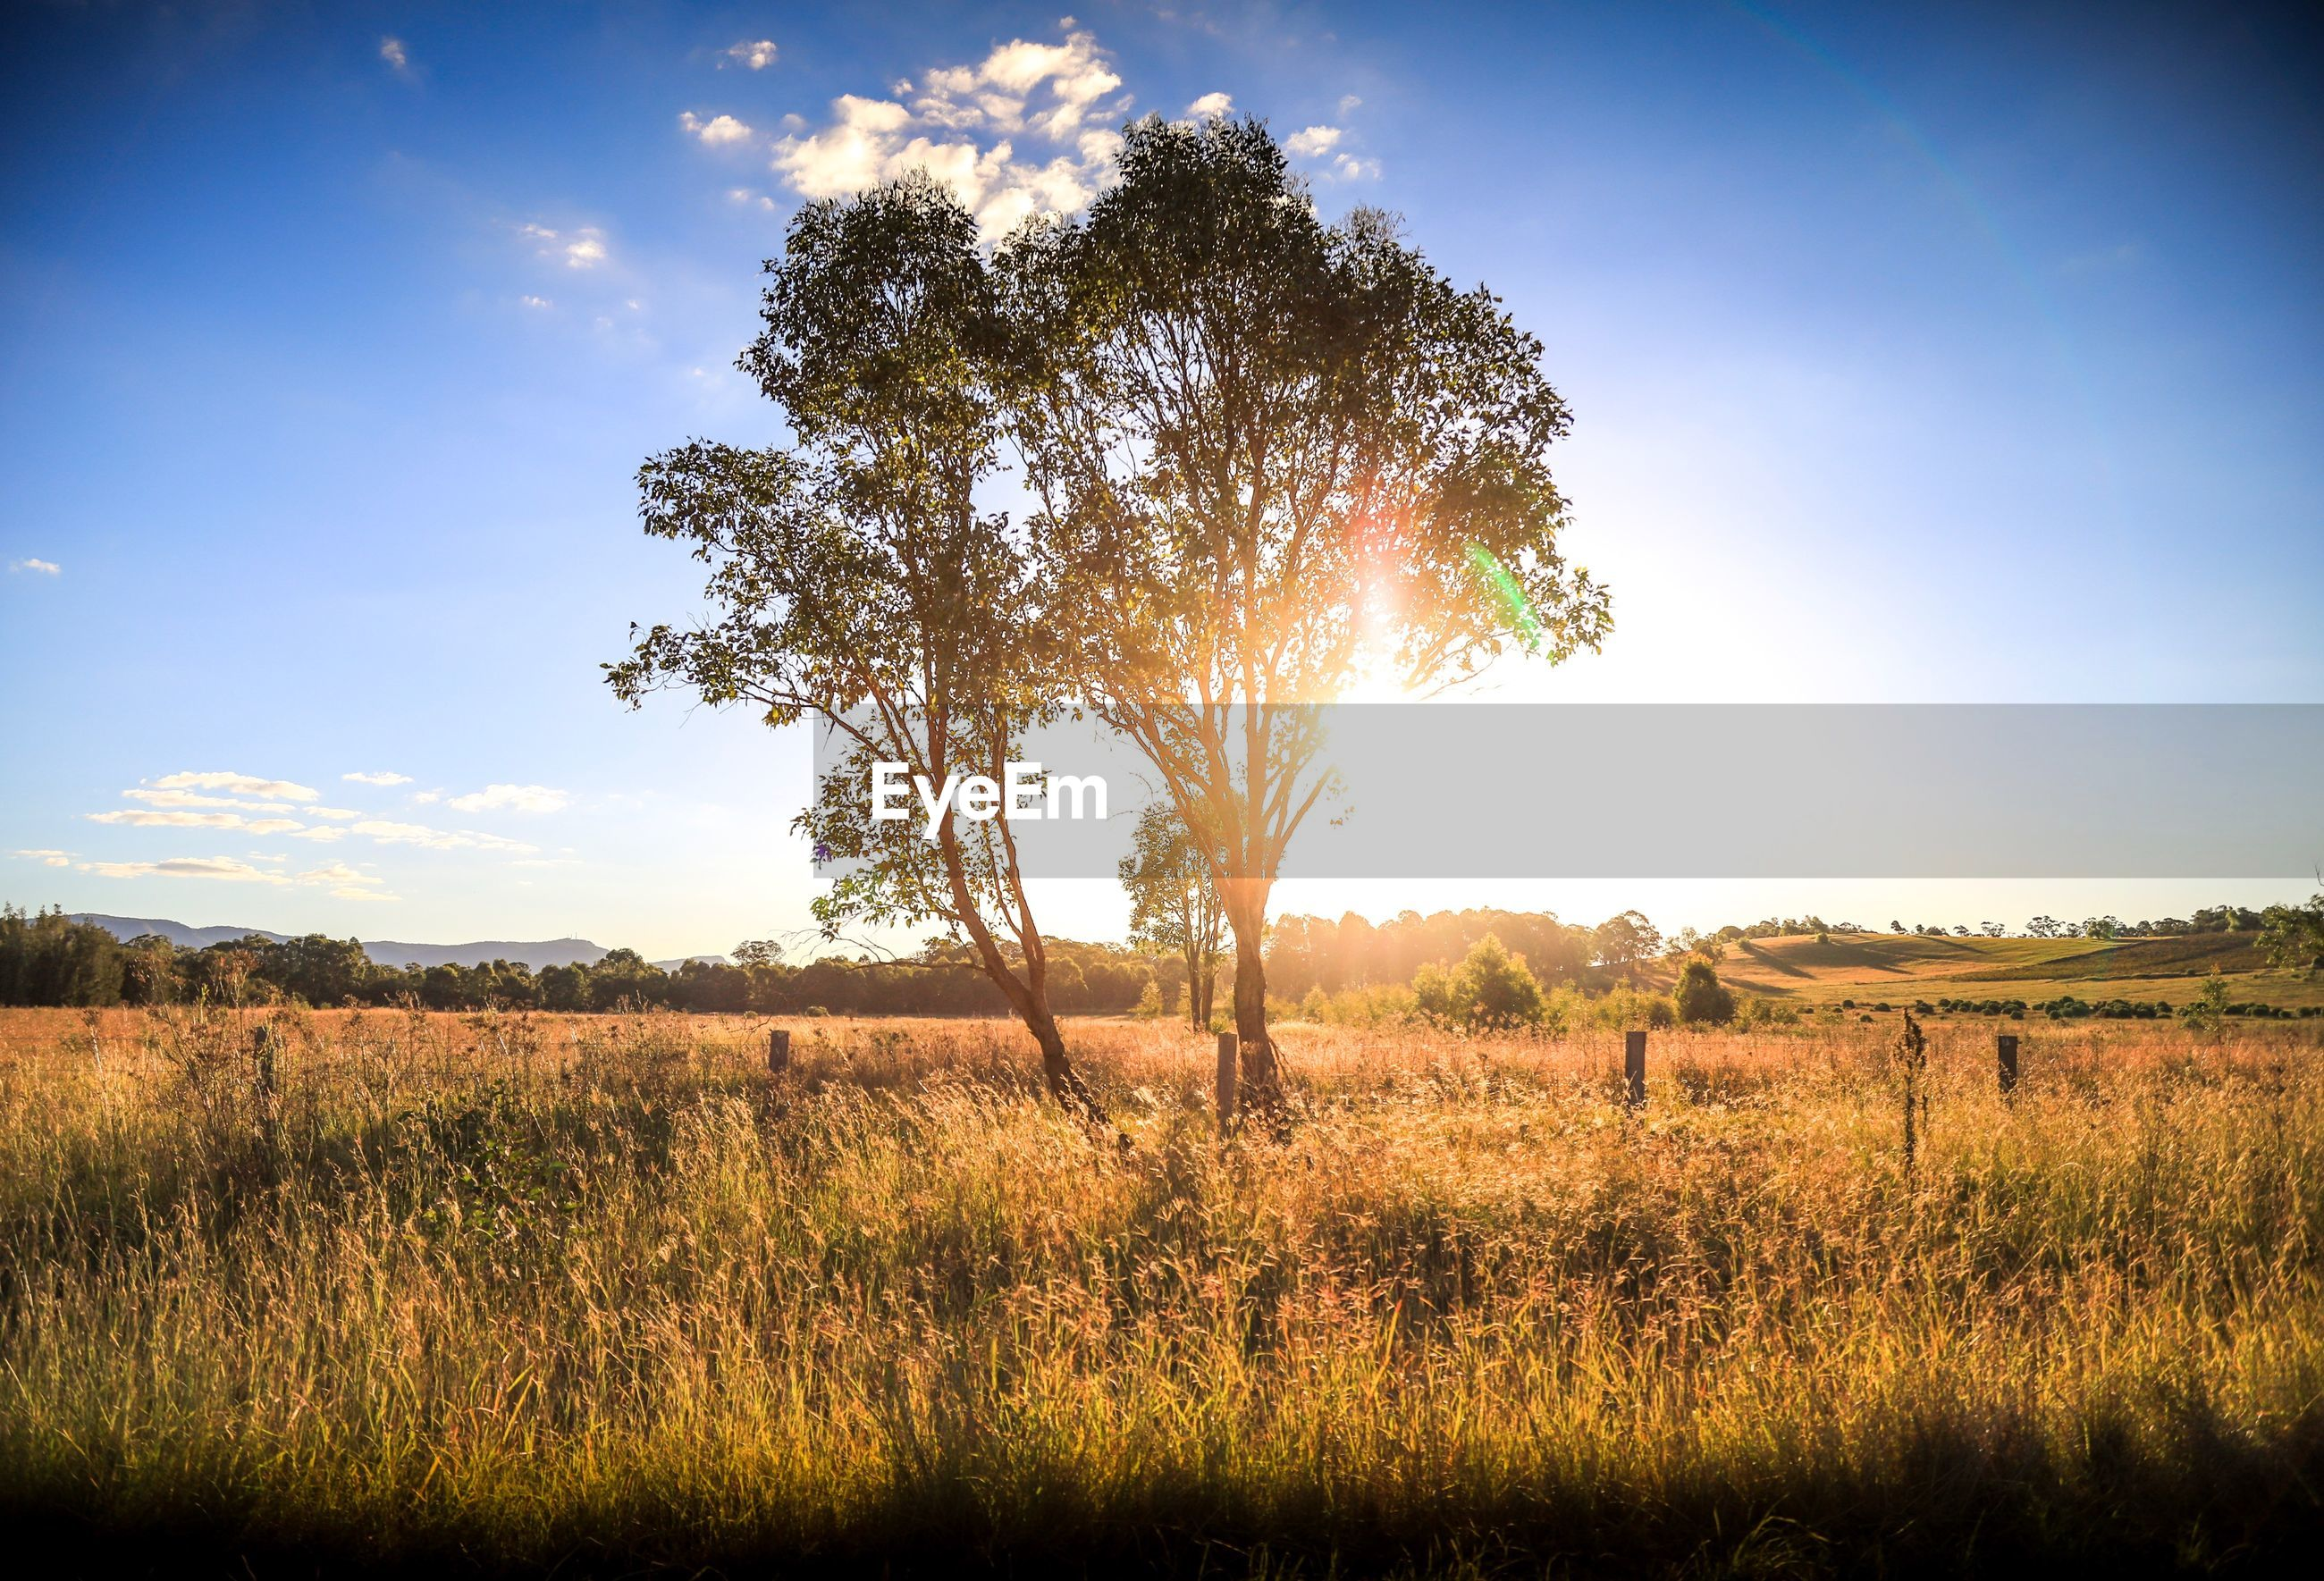 TREES ON FIELD AGAINST BRIGHT SKY